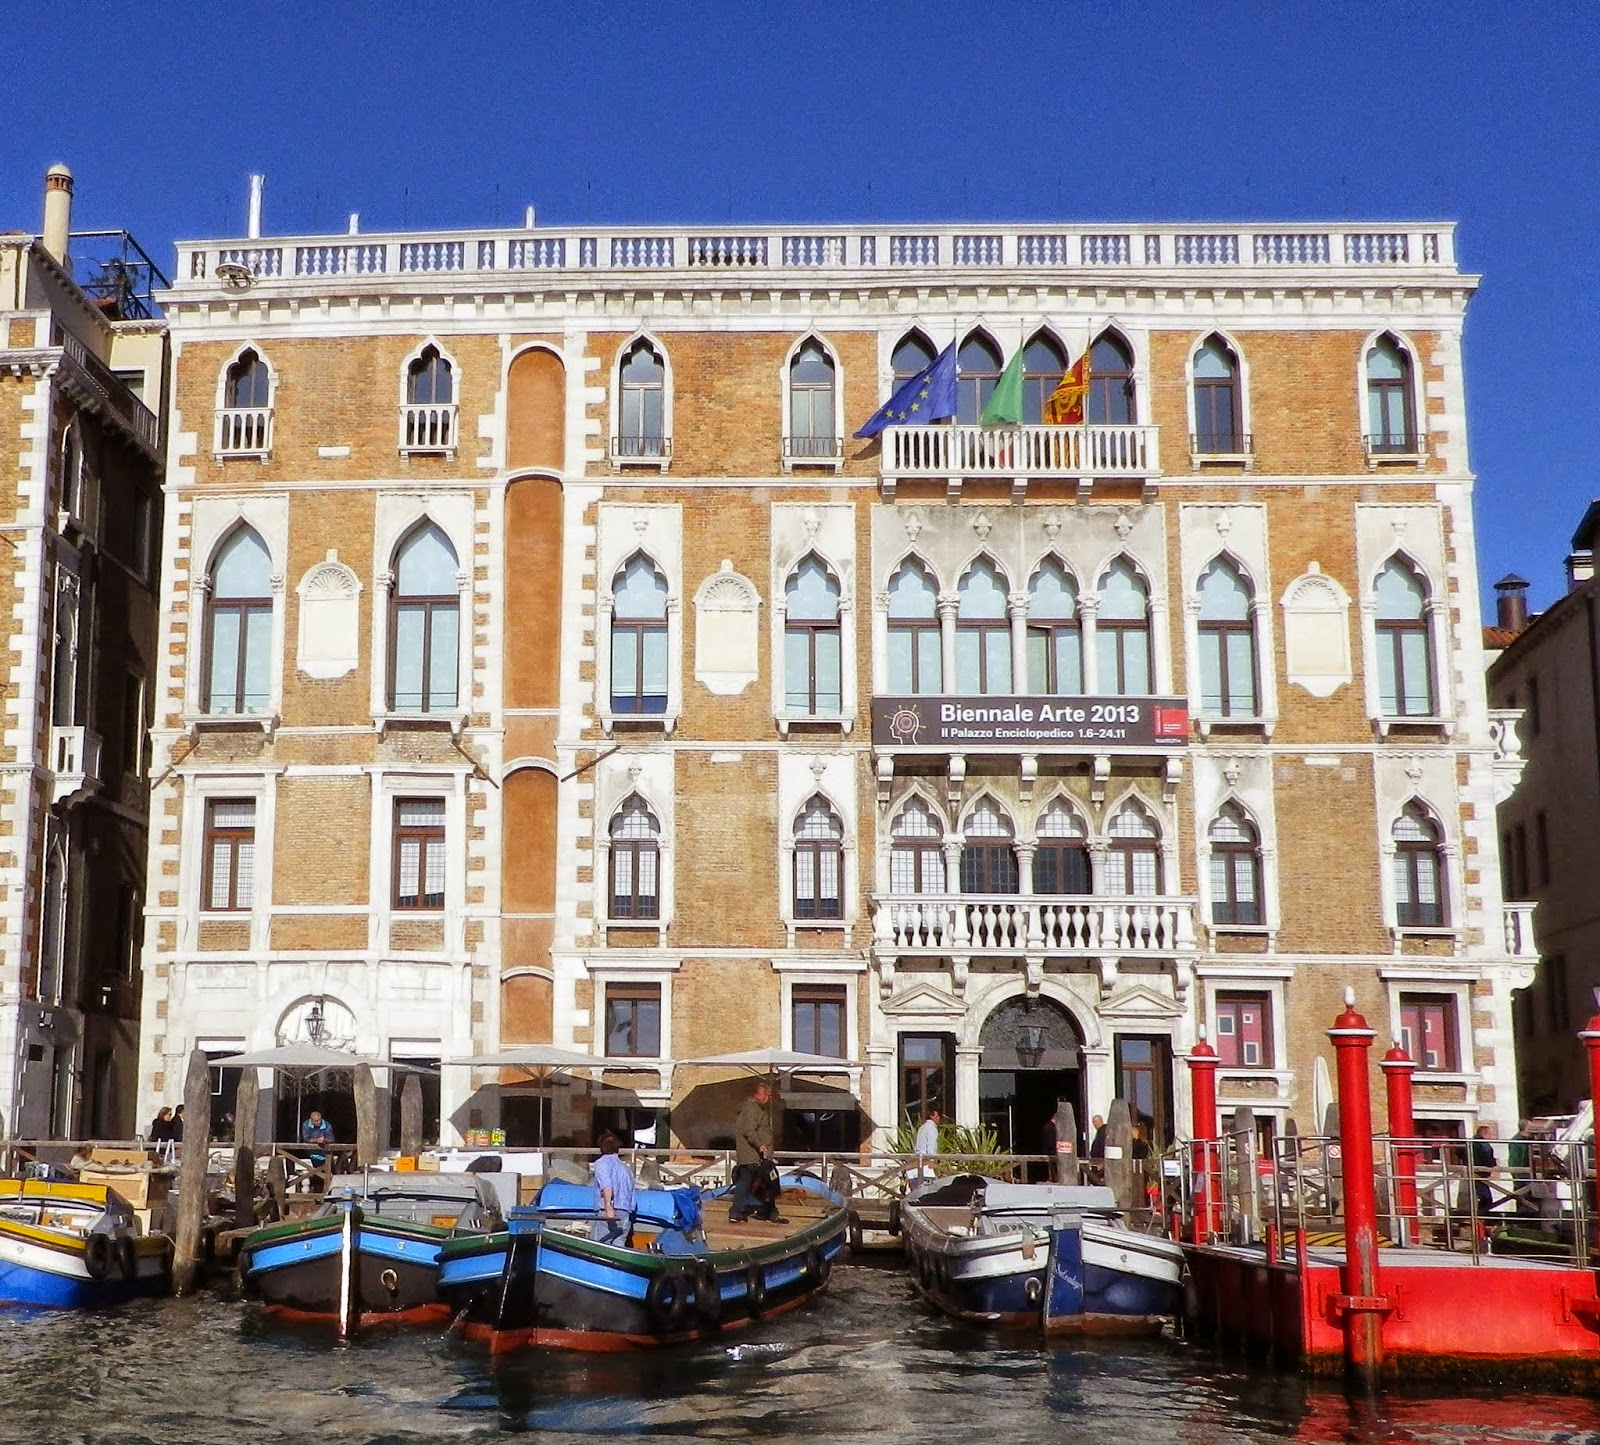 The newly married George Eliot and John Cross spent part of their honeymoon in the Palazzo Giustinian, Venice